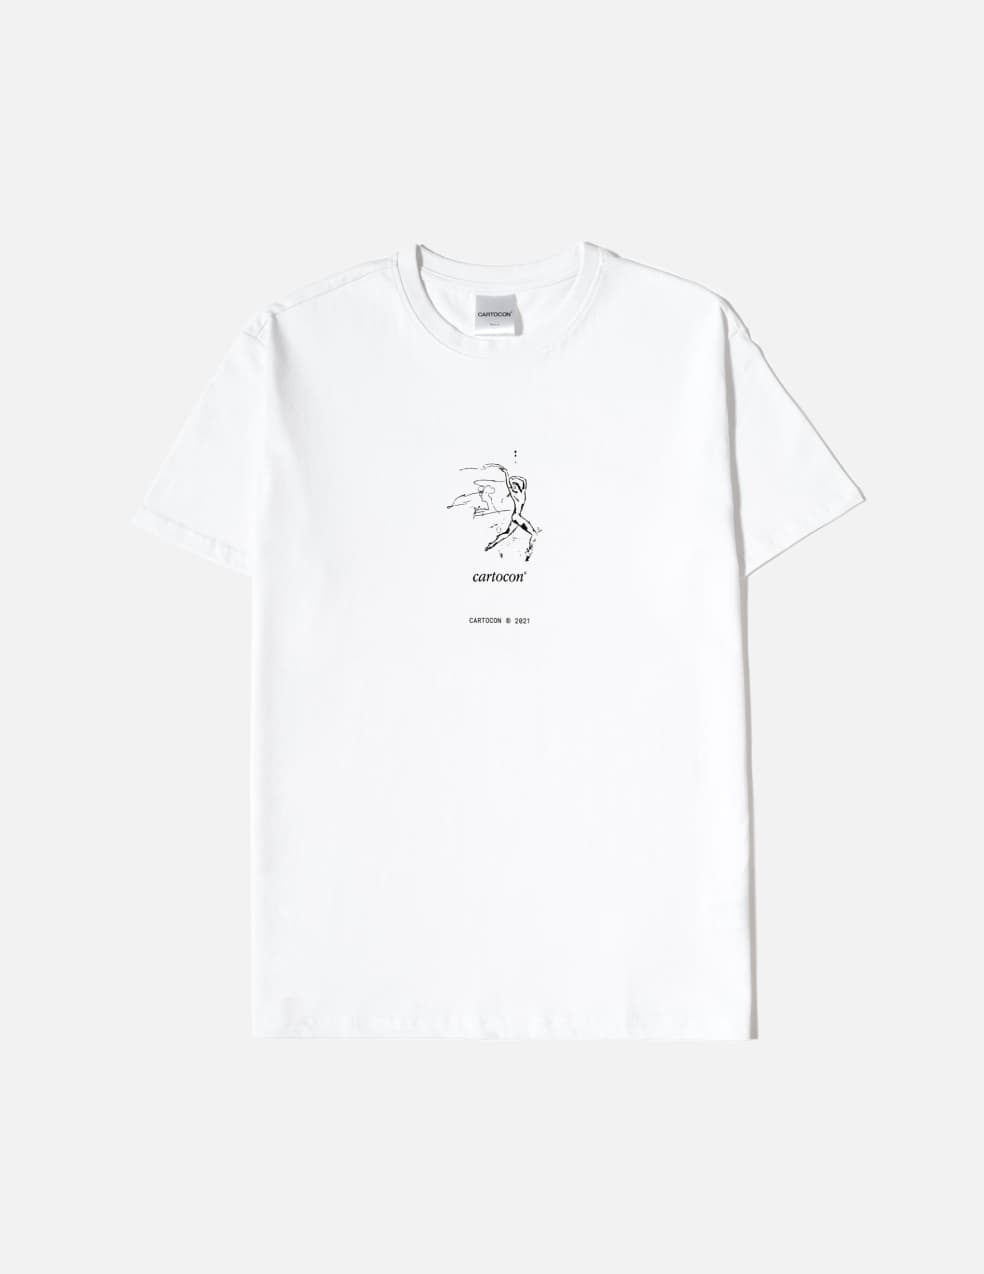 CARTOCON Dance Index T-Shirt - White | T-Shirt by Cartocon 1